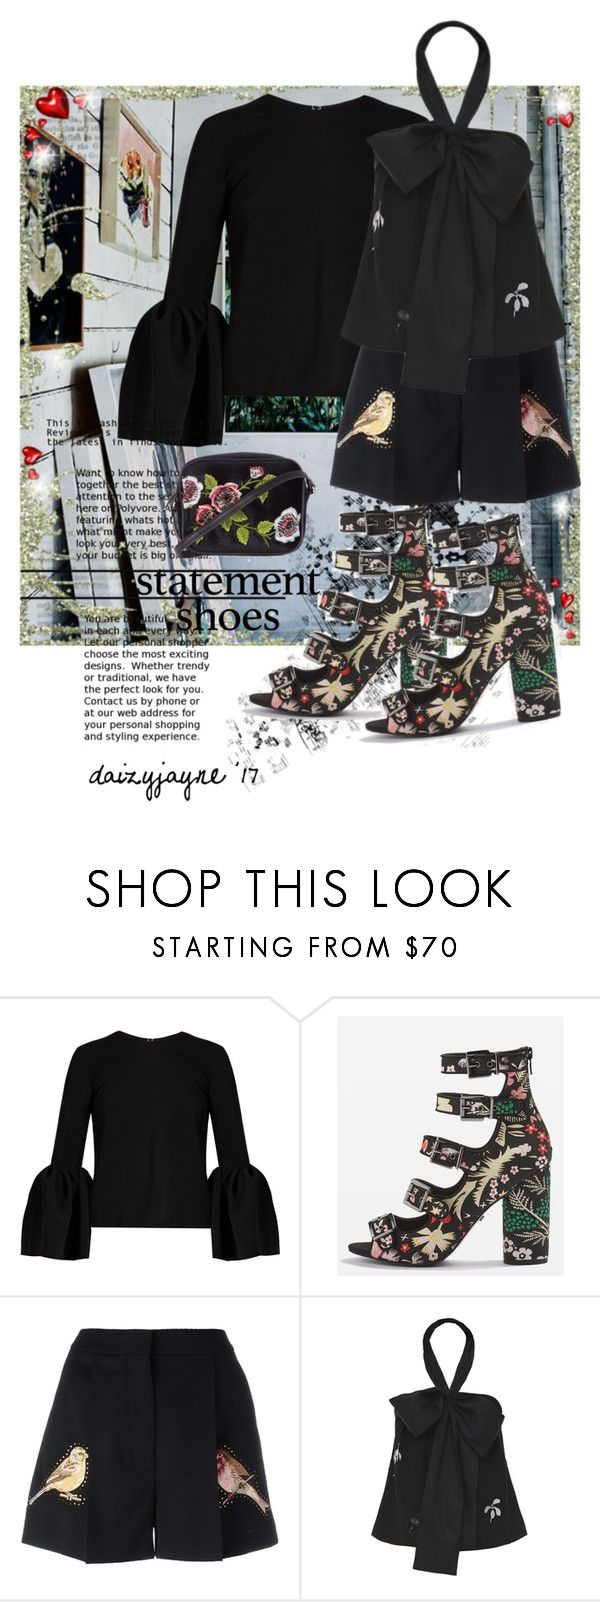 """""""statement shoes"""" by daizyjayne ❤ liked on Polyvore featuring Roksanda, Topshop, STELLA McCARTNEY, Jonathan Saunders, contestentry and statementshoes"""